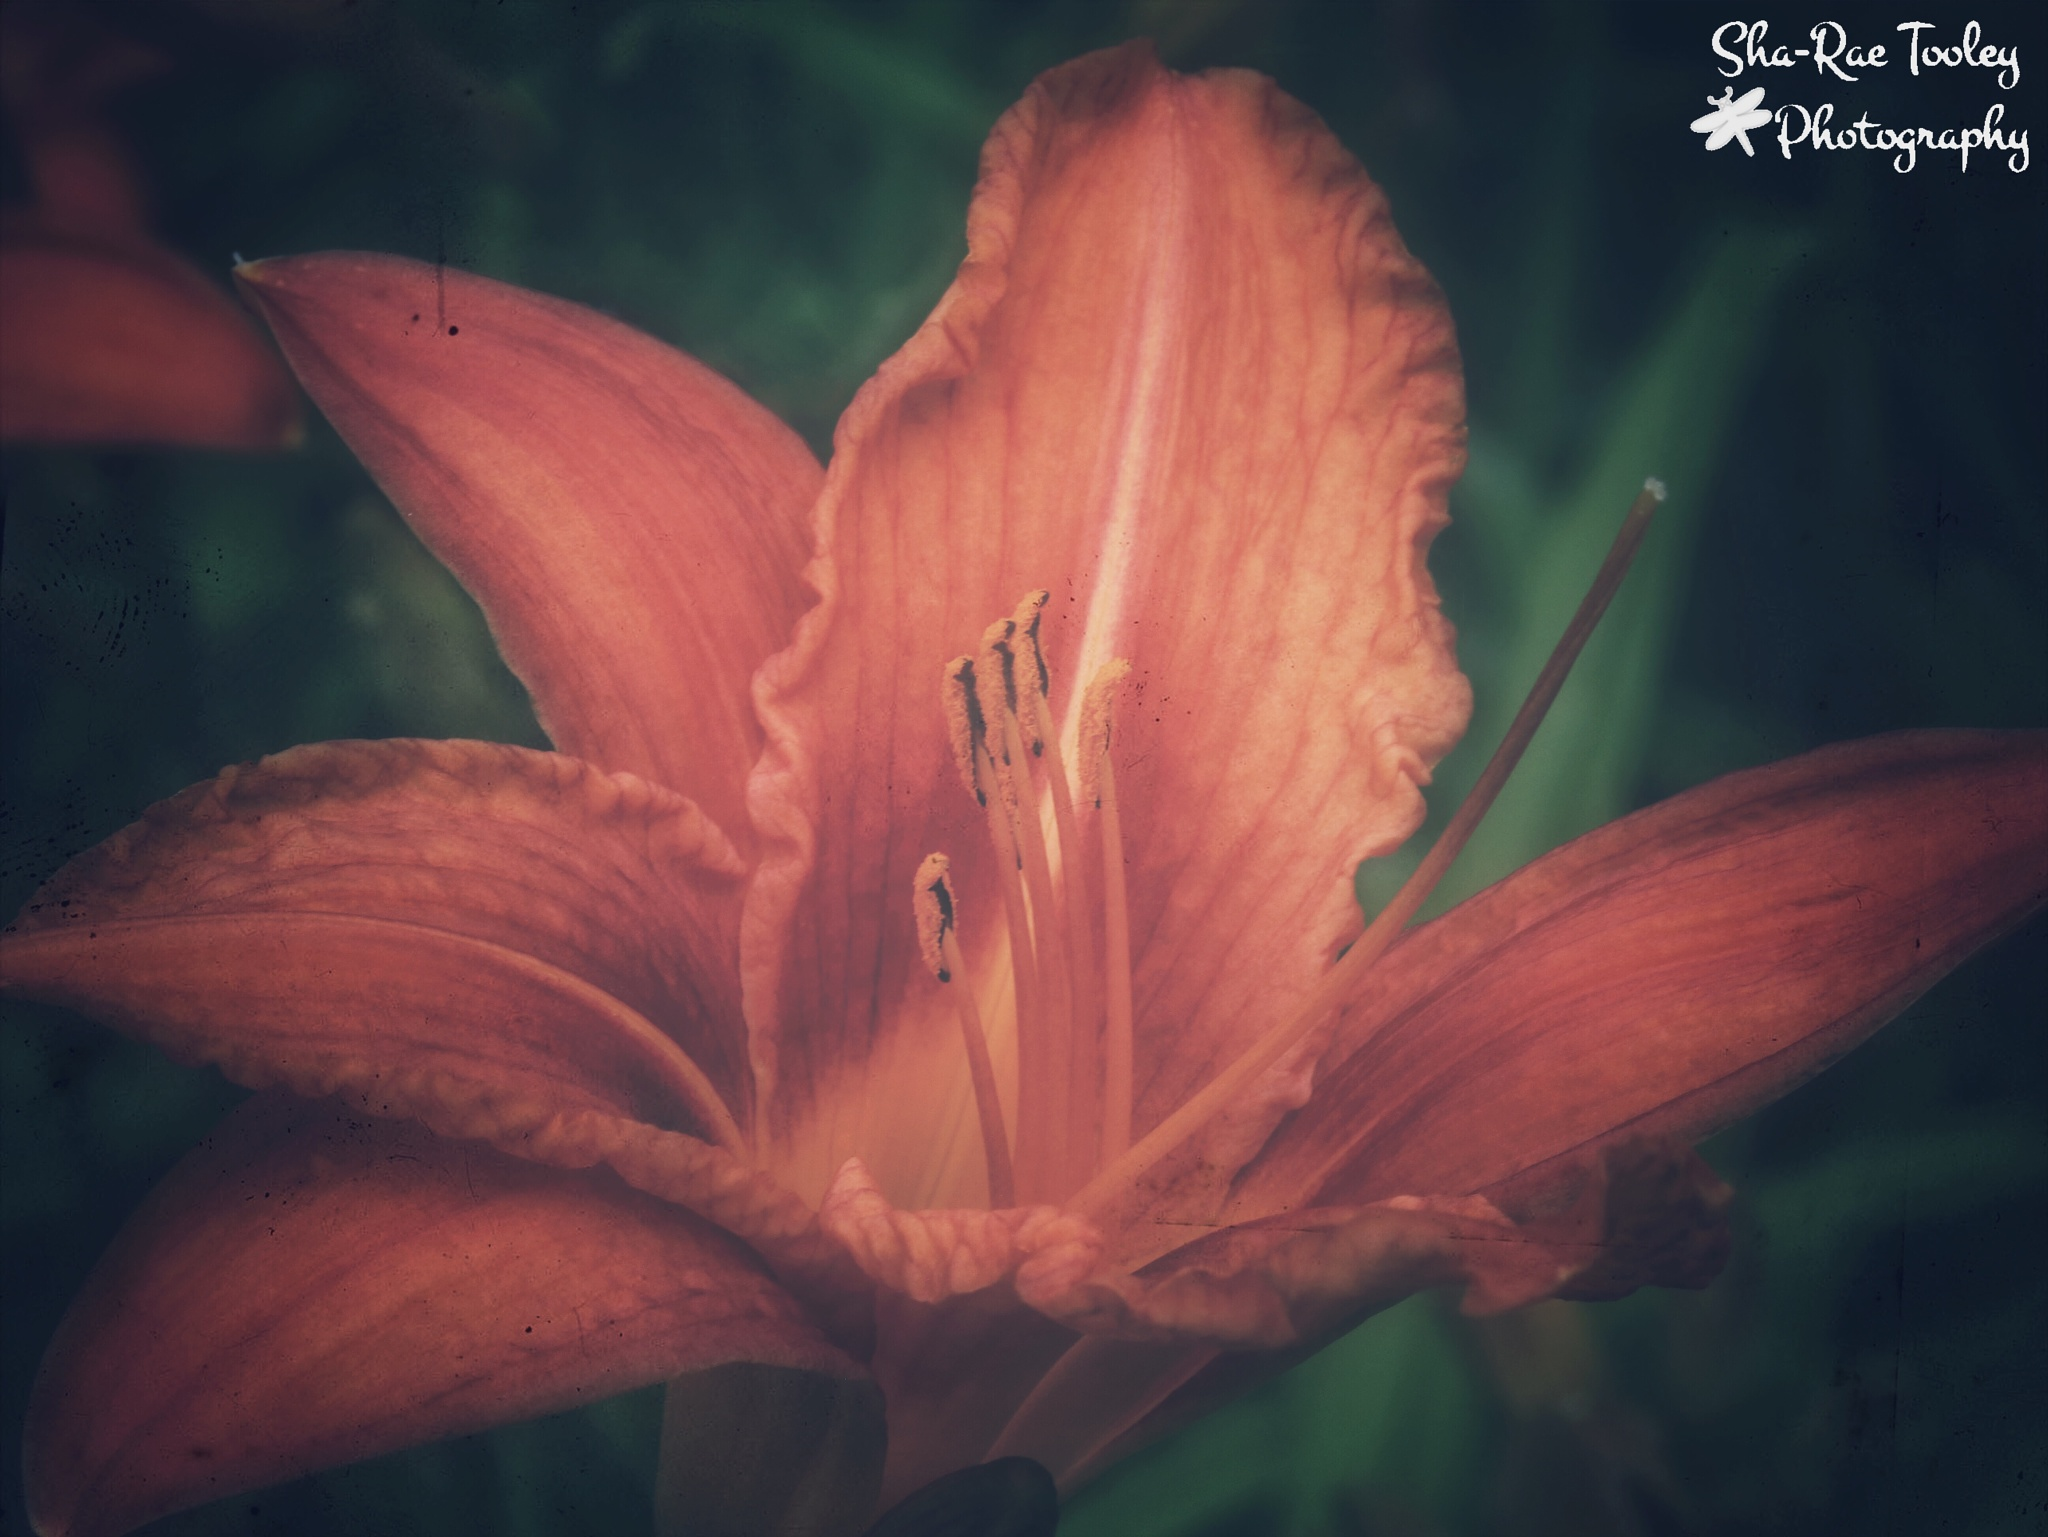 Lily by Sha-Rae Prevost-Tooley